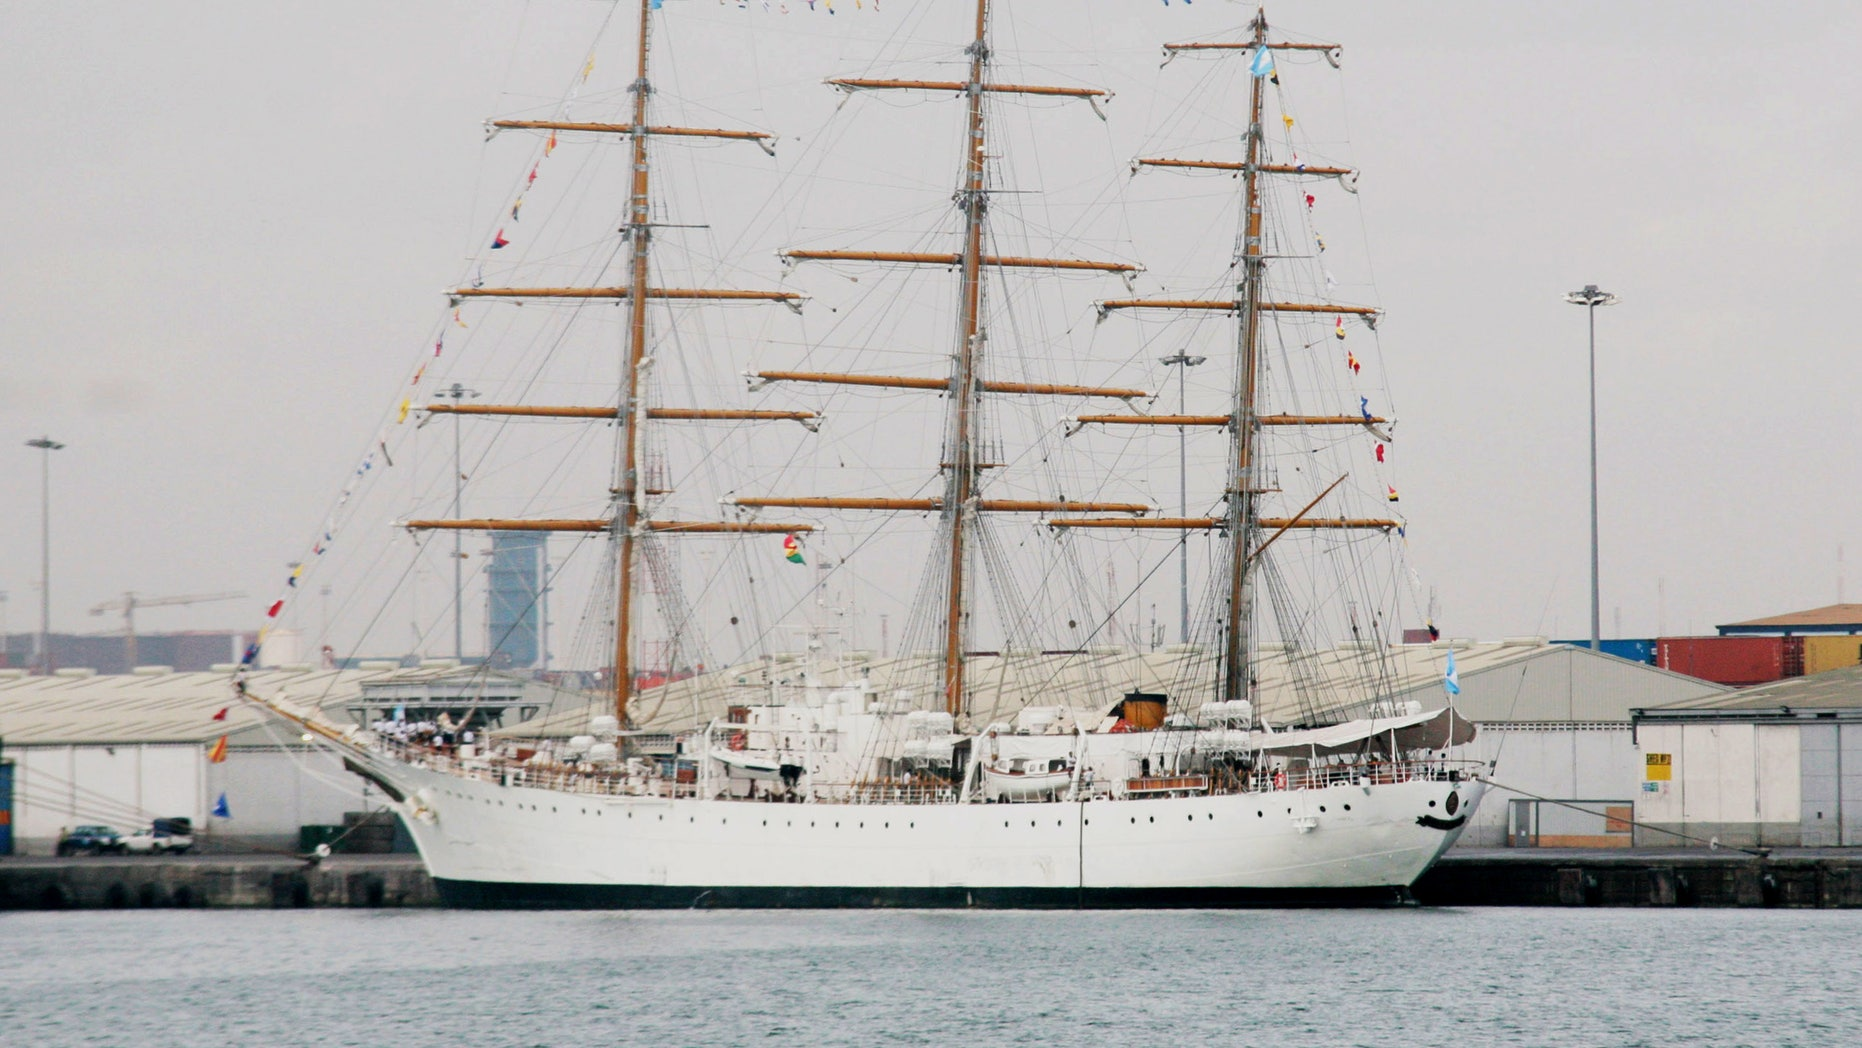 The flagship of Argentina's navy, the A.R.A. Libertad, sits docked at the port of Tema, outside Accra, Ghana, where it is being held by a judge answering a complaint from a U.S. hedge fund, Friday, Oct. 5, 2012. A court in Ghana on Tuesday, Oct. 2,  ordered the ship held in port until Argentina posts a court bond equal to its value, which could be $10 million or more. The three-masted tall ship stopped in Tema while training hundreds of navy cadets. (AP Photo/ Christian Thompson)